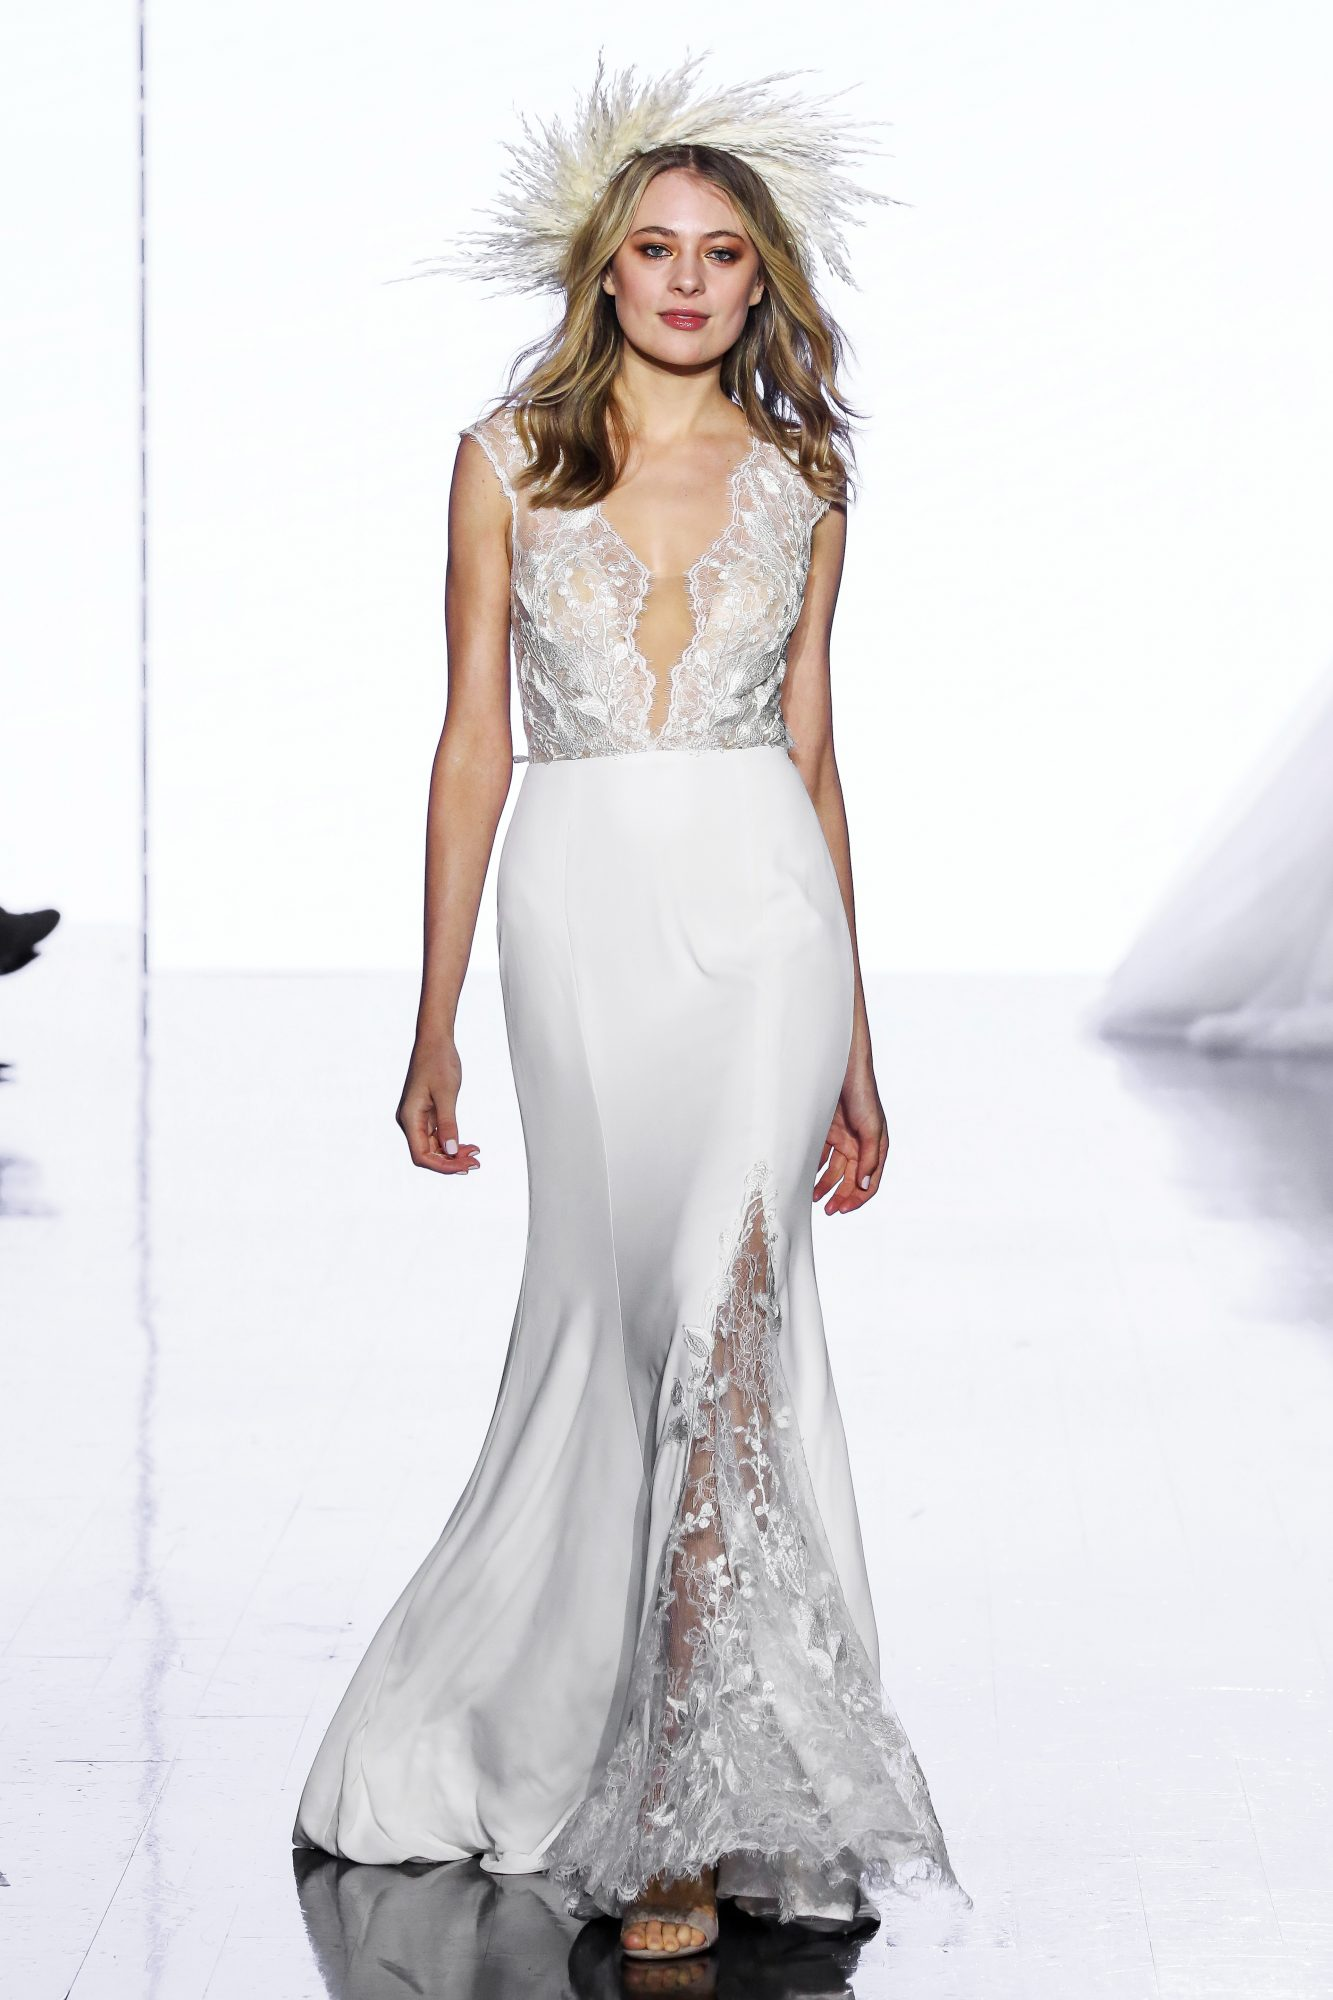 Mermaid wedding dress with deep V-neckline, floral embroidery, illusion cut out, cap sleeves, and slit